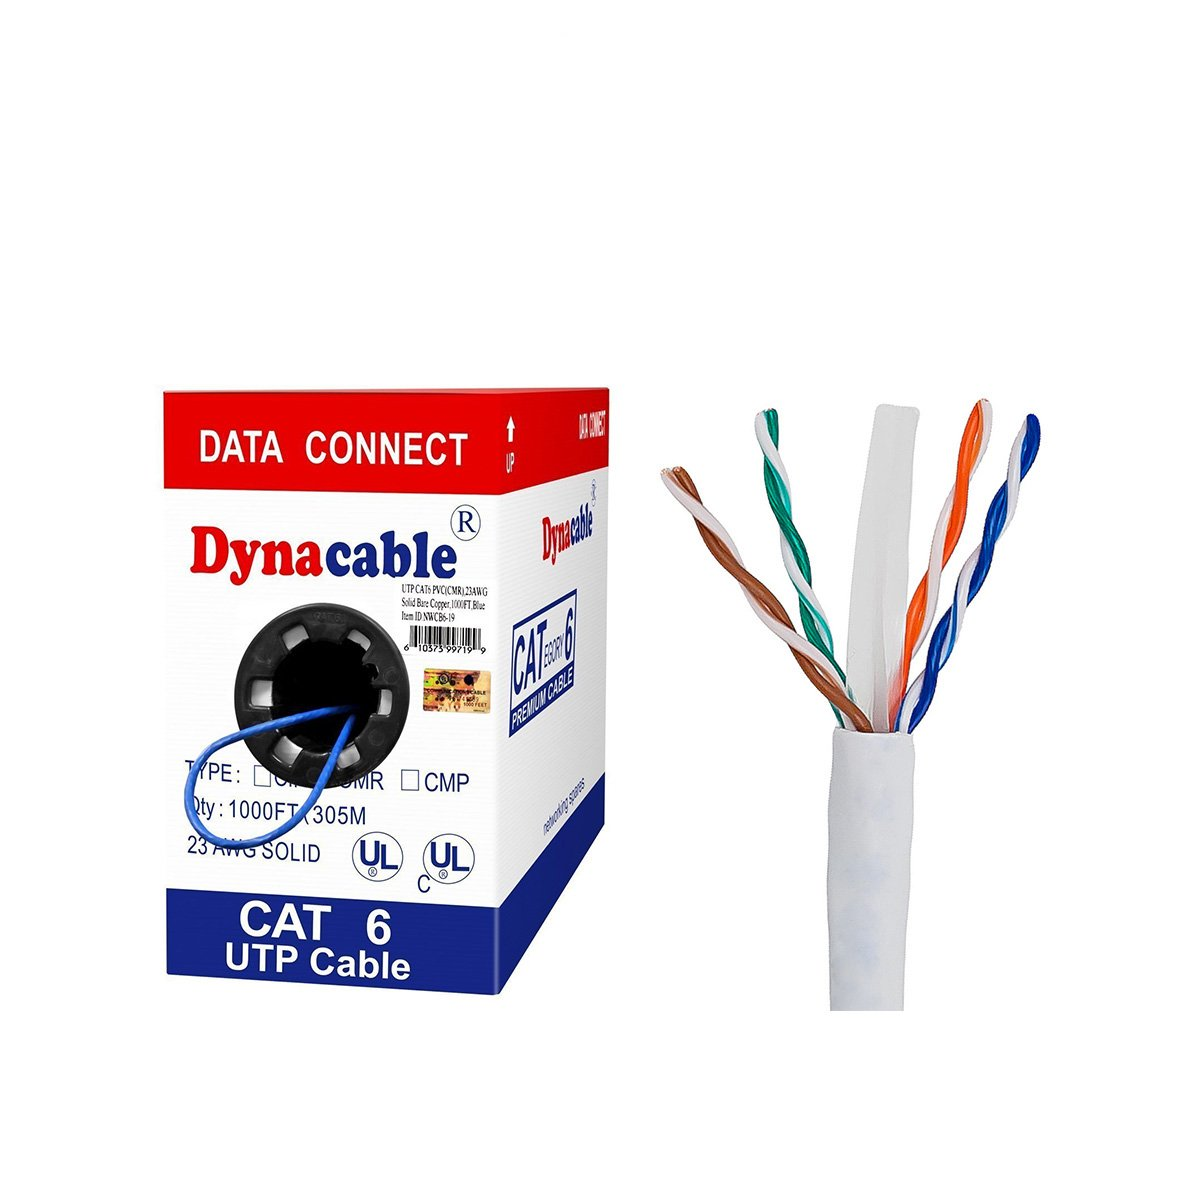 (UL-Listed) DynaCable Cat6, In-Wall Rated (CM) Solid Bare Copper Bulk Ethernet Cable 1000 Feet, 550MHz 23 AWG Unshielded Twisted Pair, UTP, White